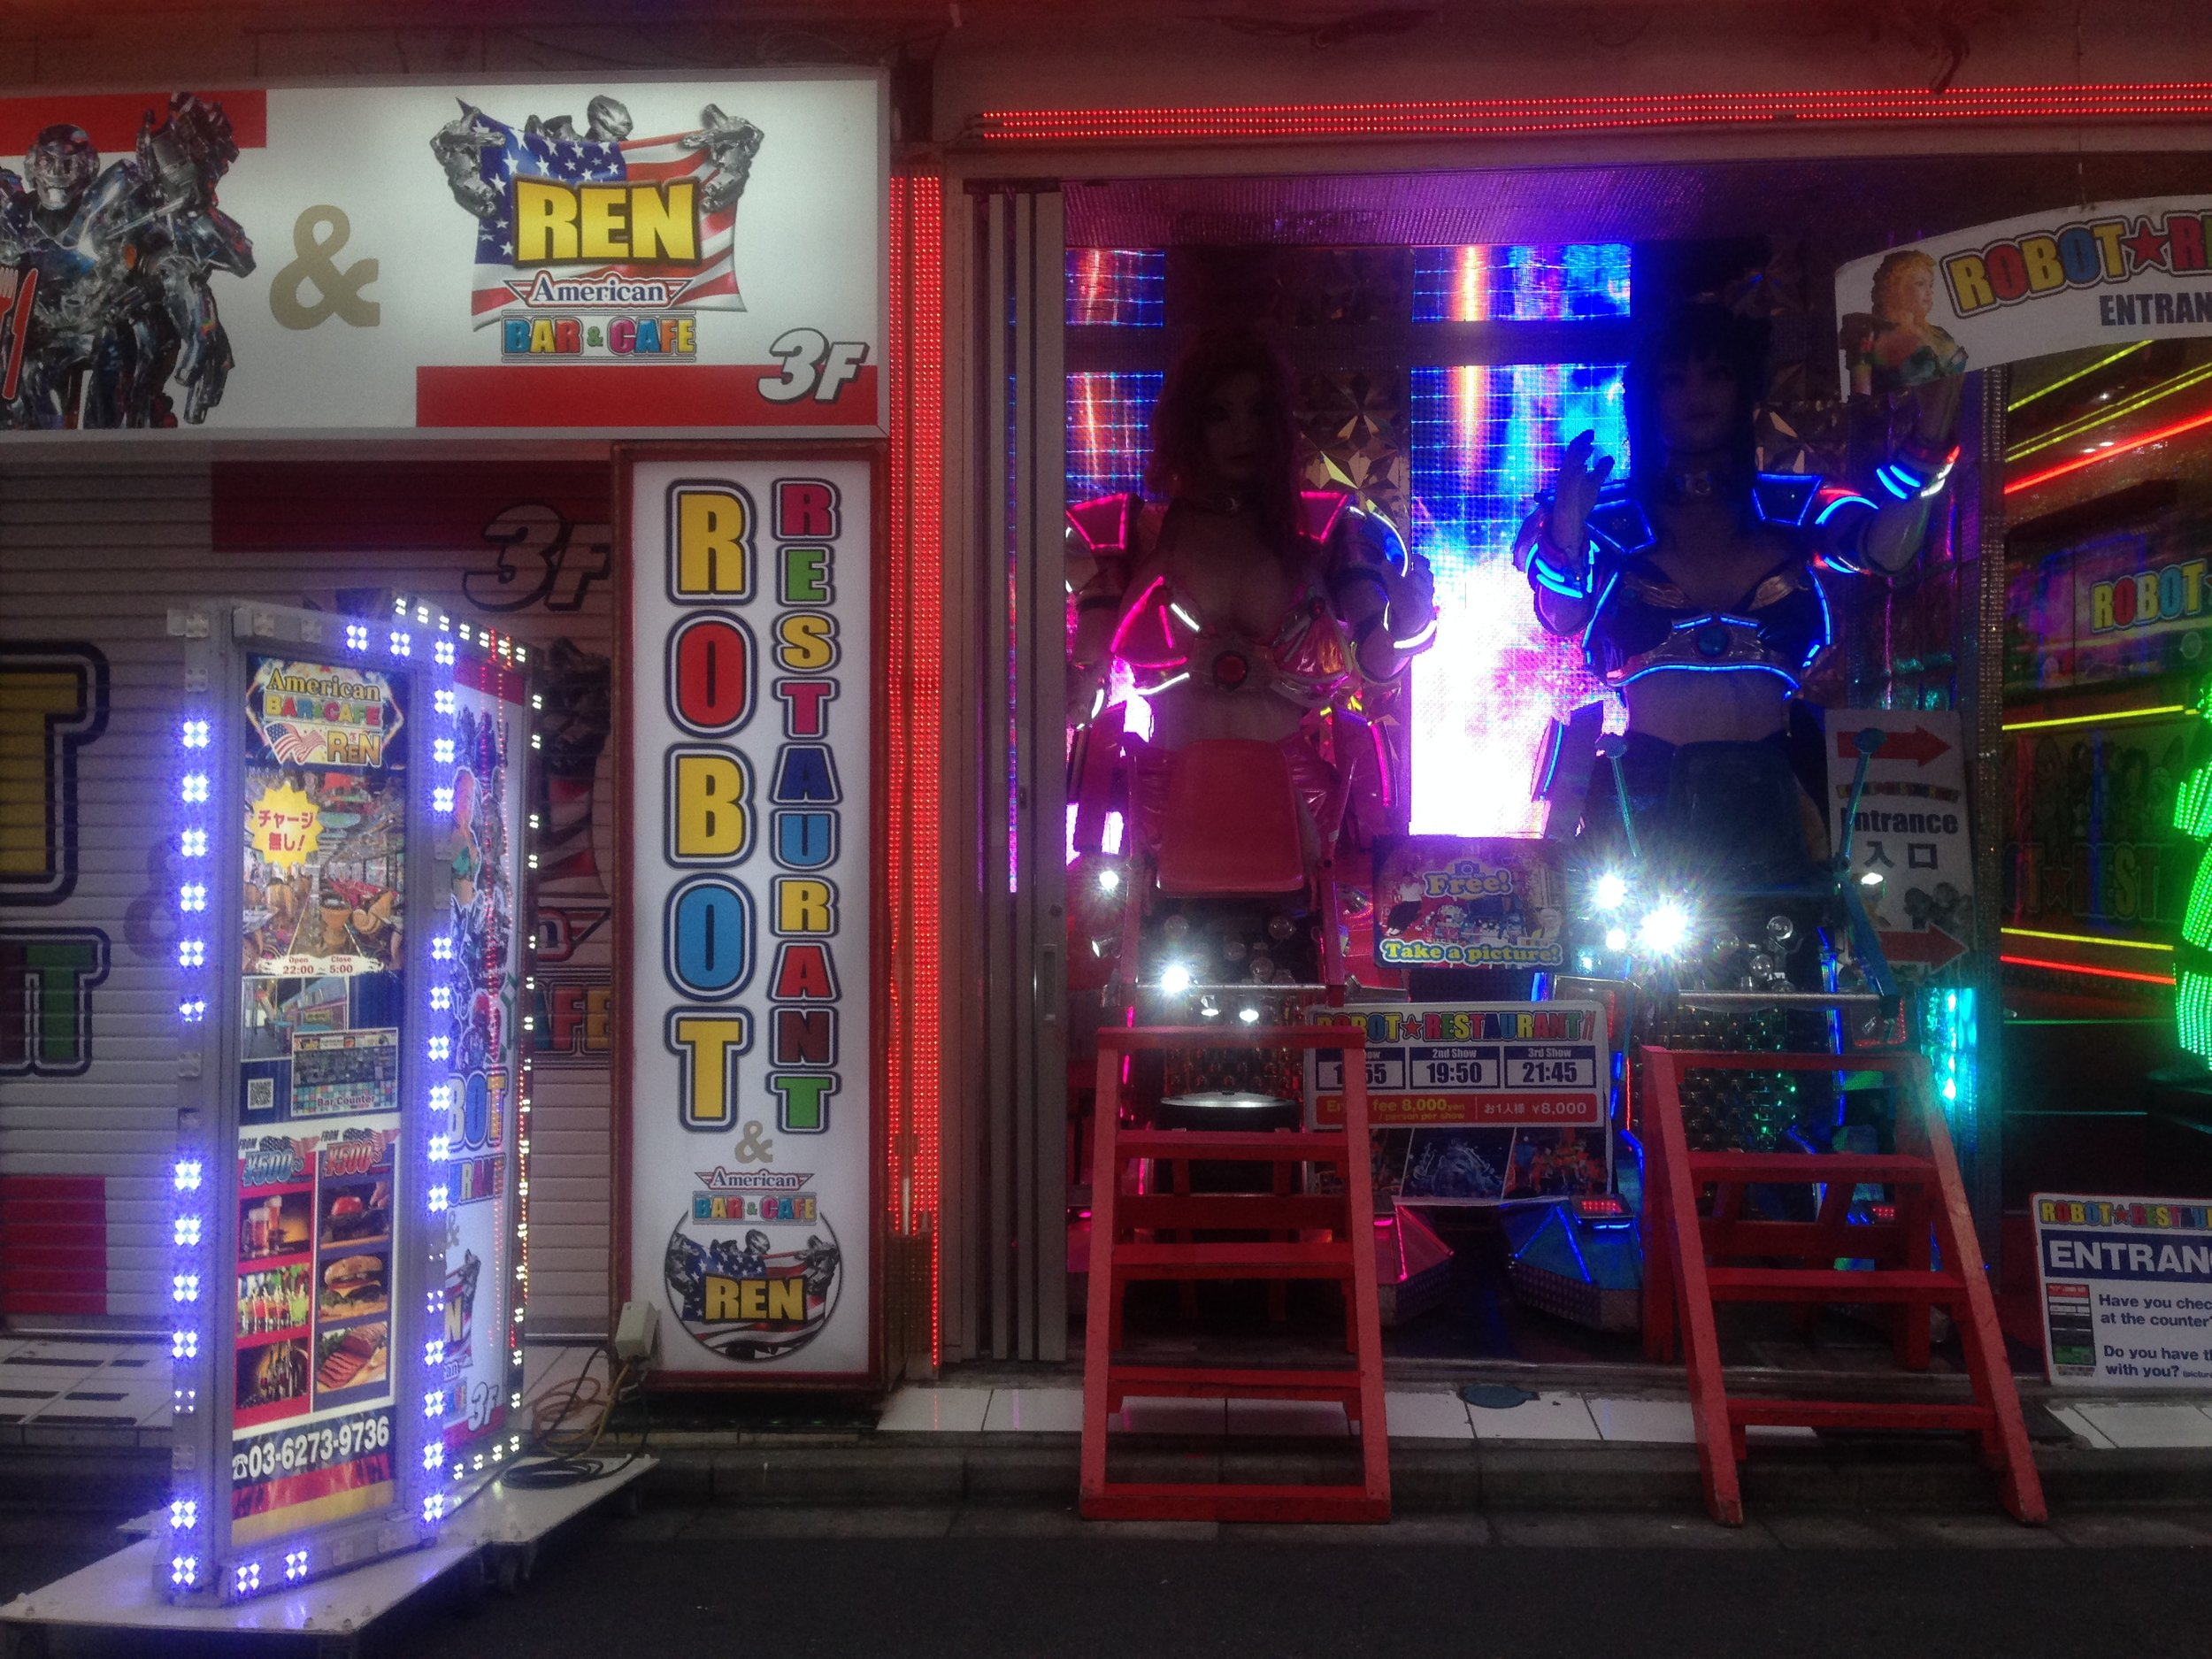 ROBOT RESTAURANT! Don't ask questions - I know nothing